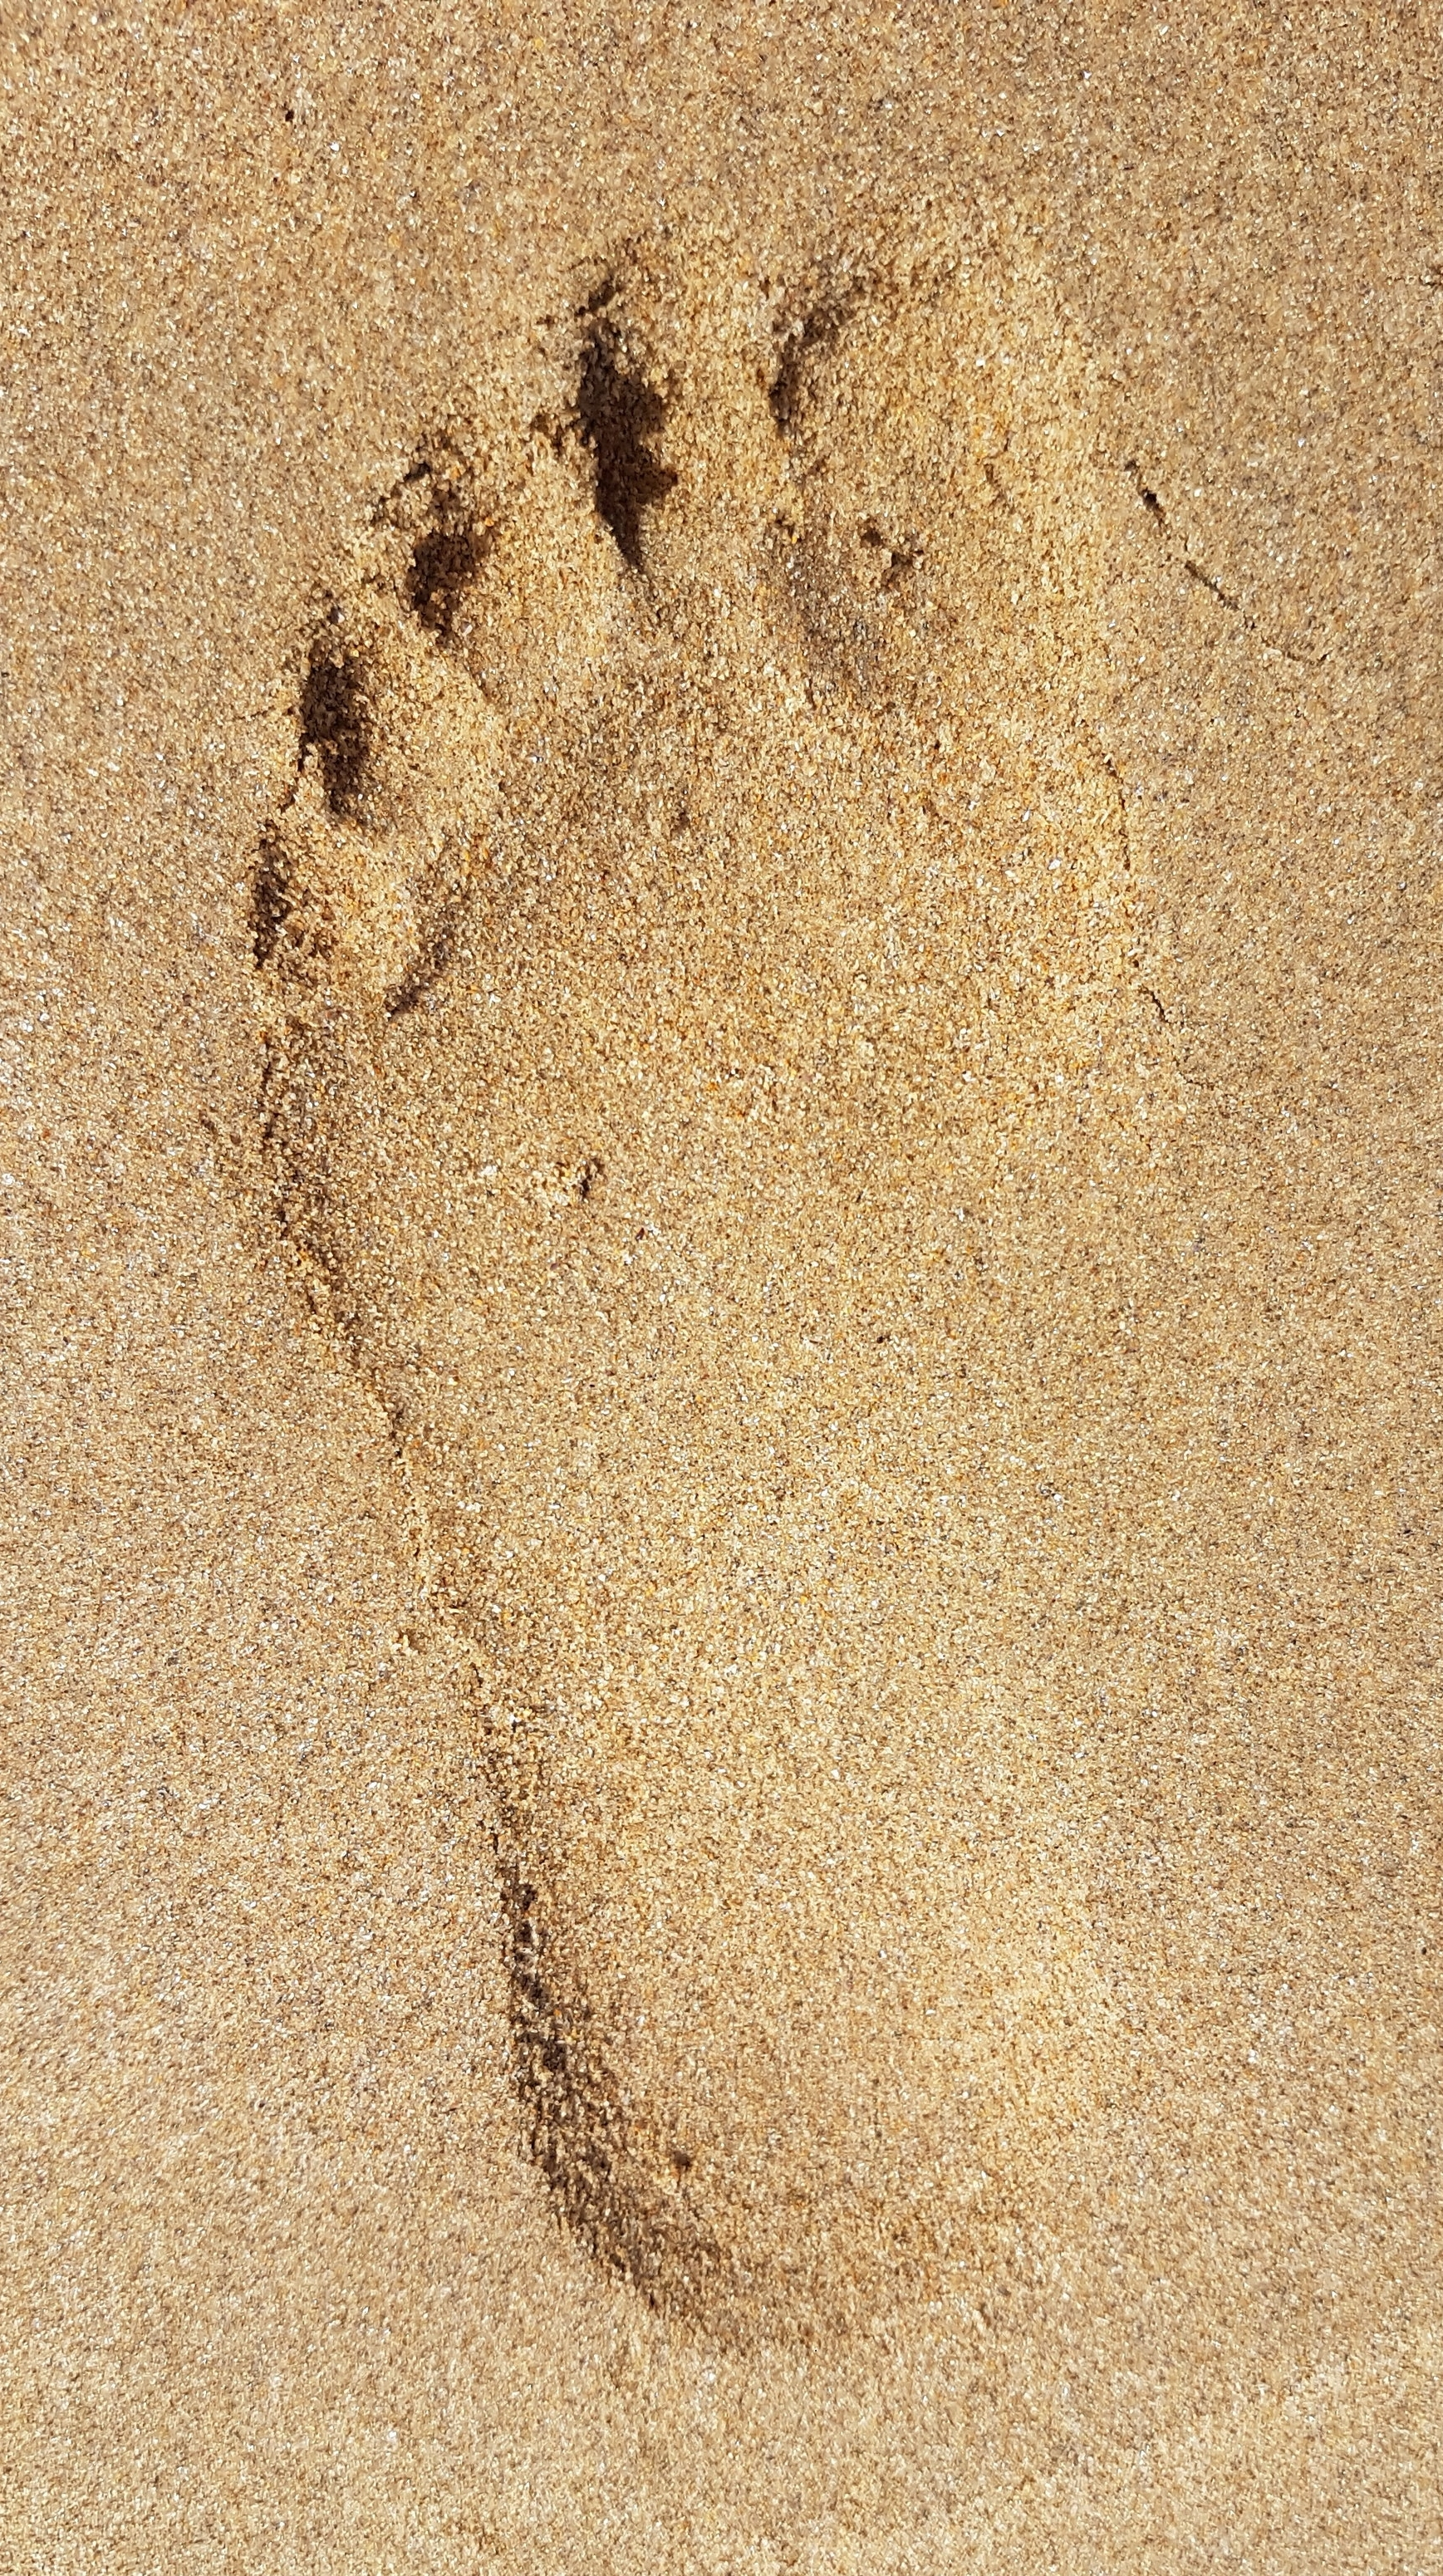 I went to the beach - and I saw footprints.